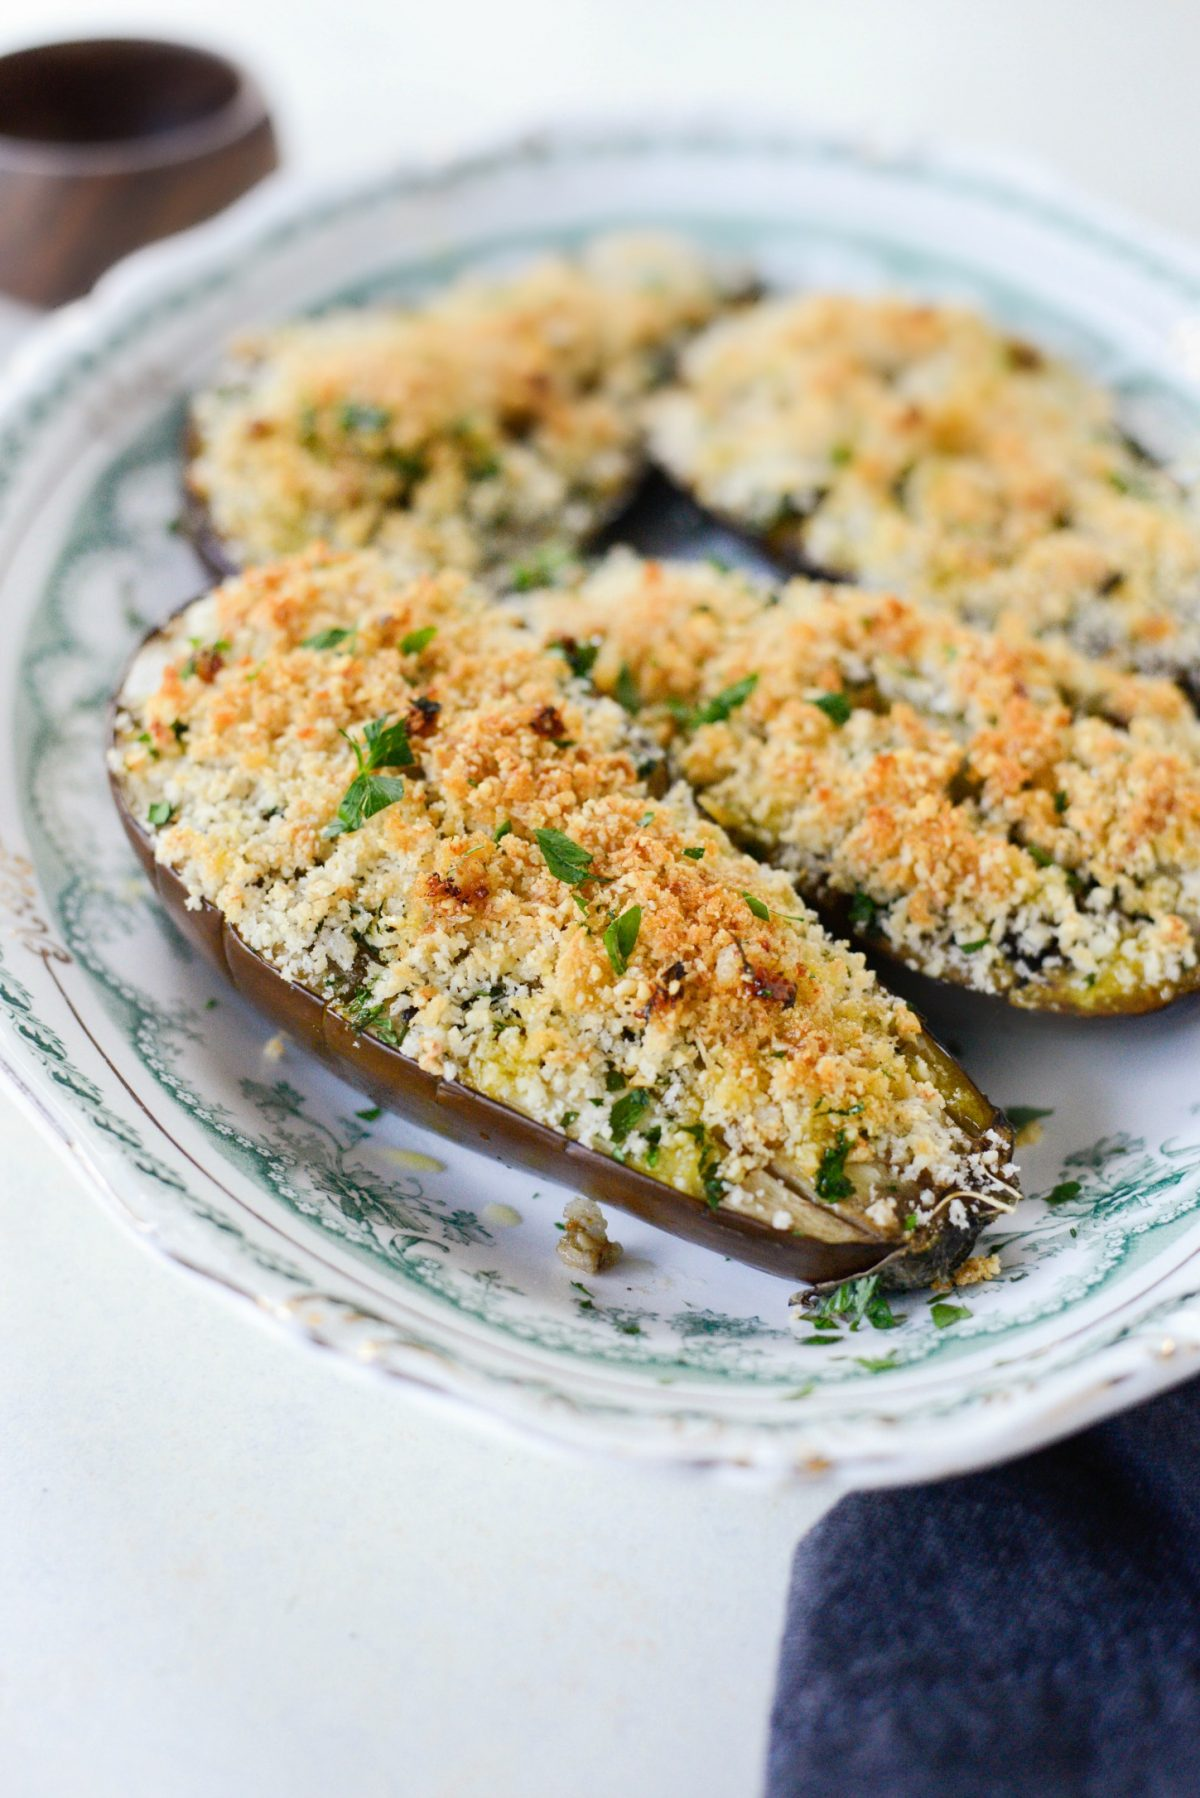 Baked Eggplant with Pecorino Crumbs l SimplyScratch.com (7)